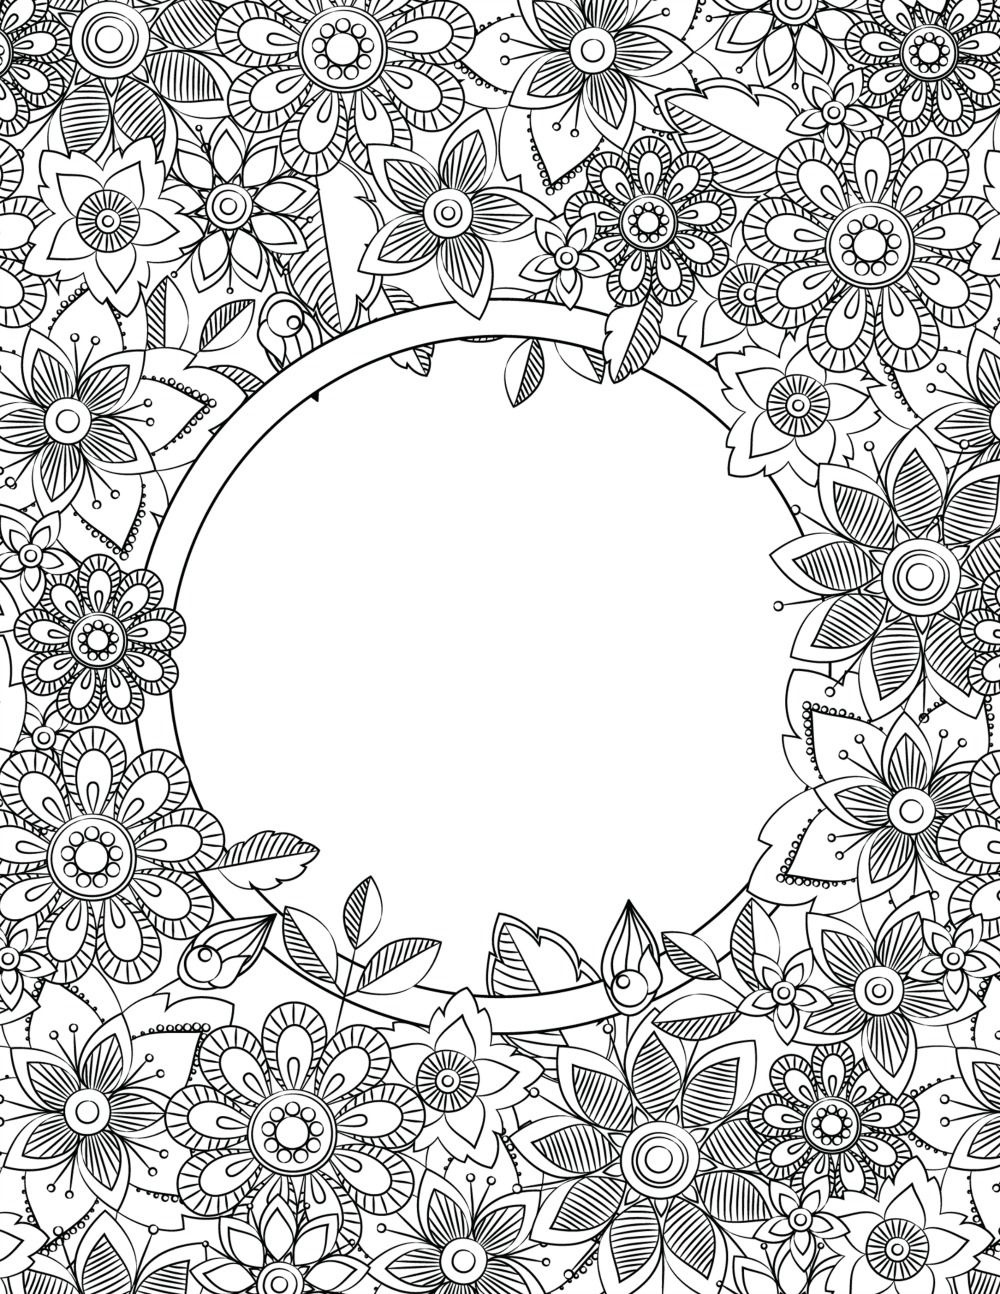 Back To School Binder Cover Adult Coloring Pages | Welcome Back To - Free Printable Binder Covers To Color